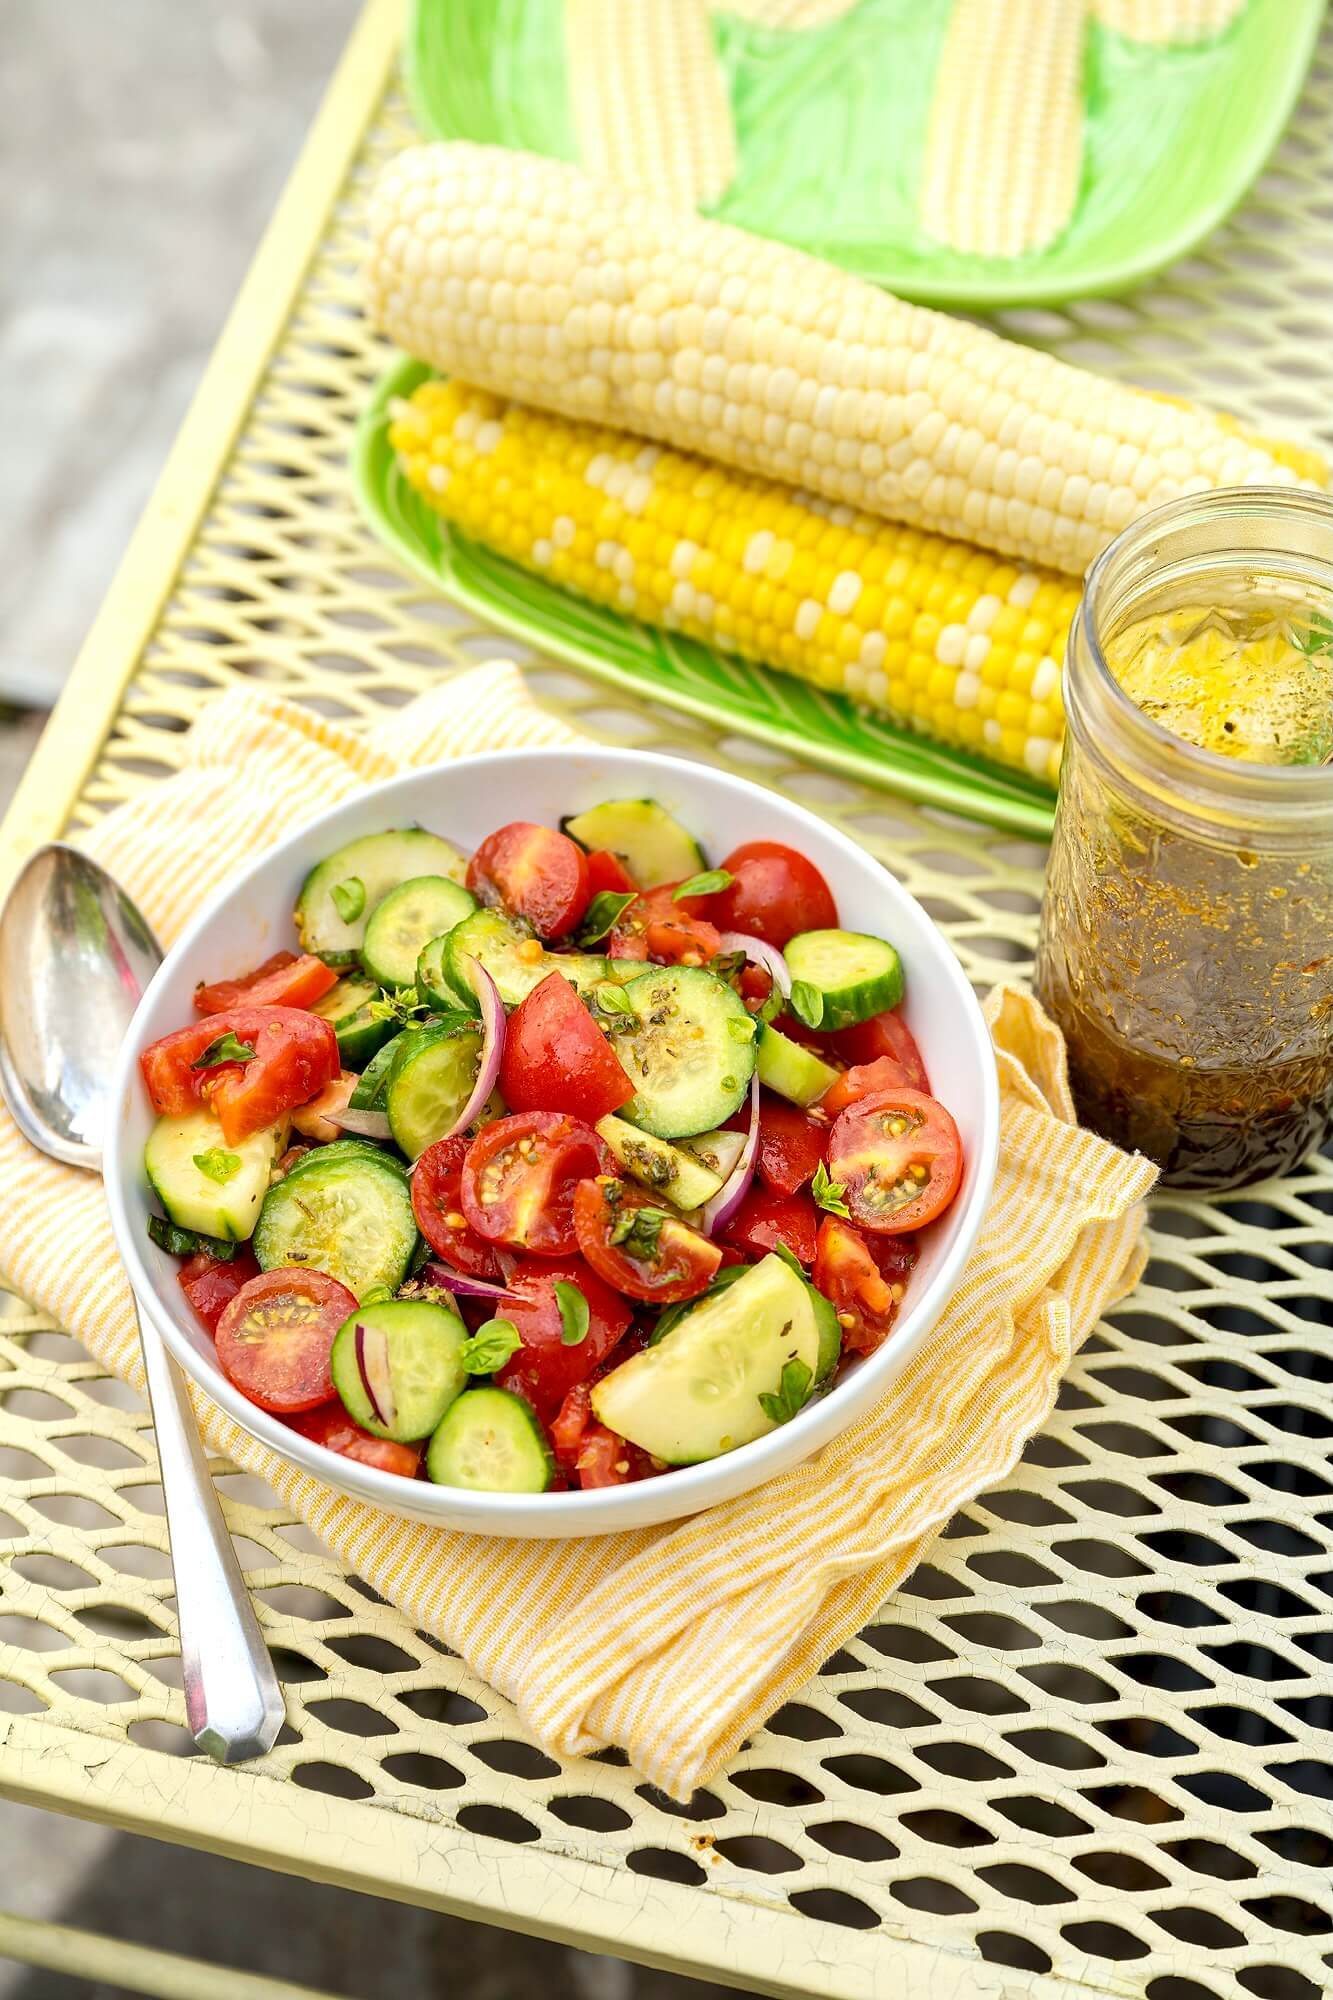 You barely need a recipe for this garden-fresh summer salad that will round out a broad range of meals, from corn on the cob and burgers to grilled fish or chicken.